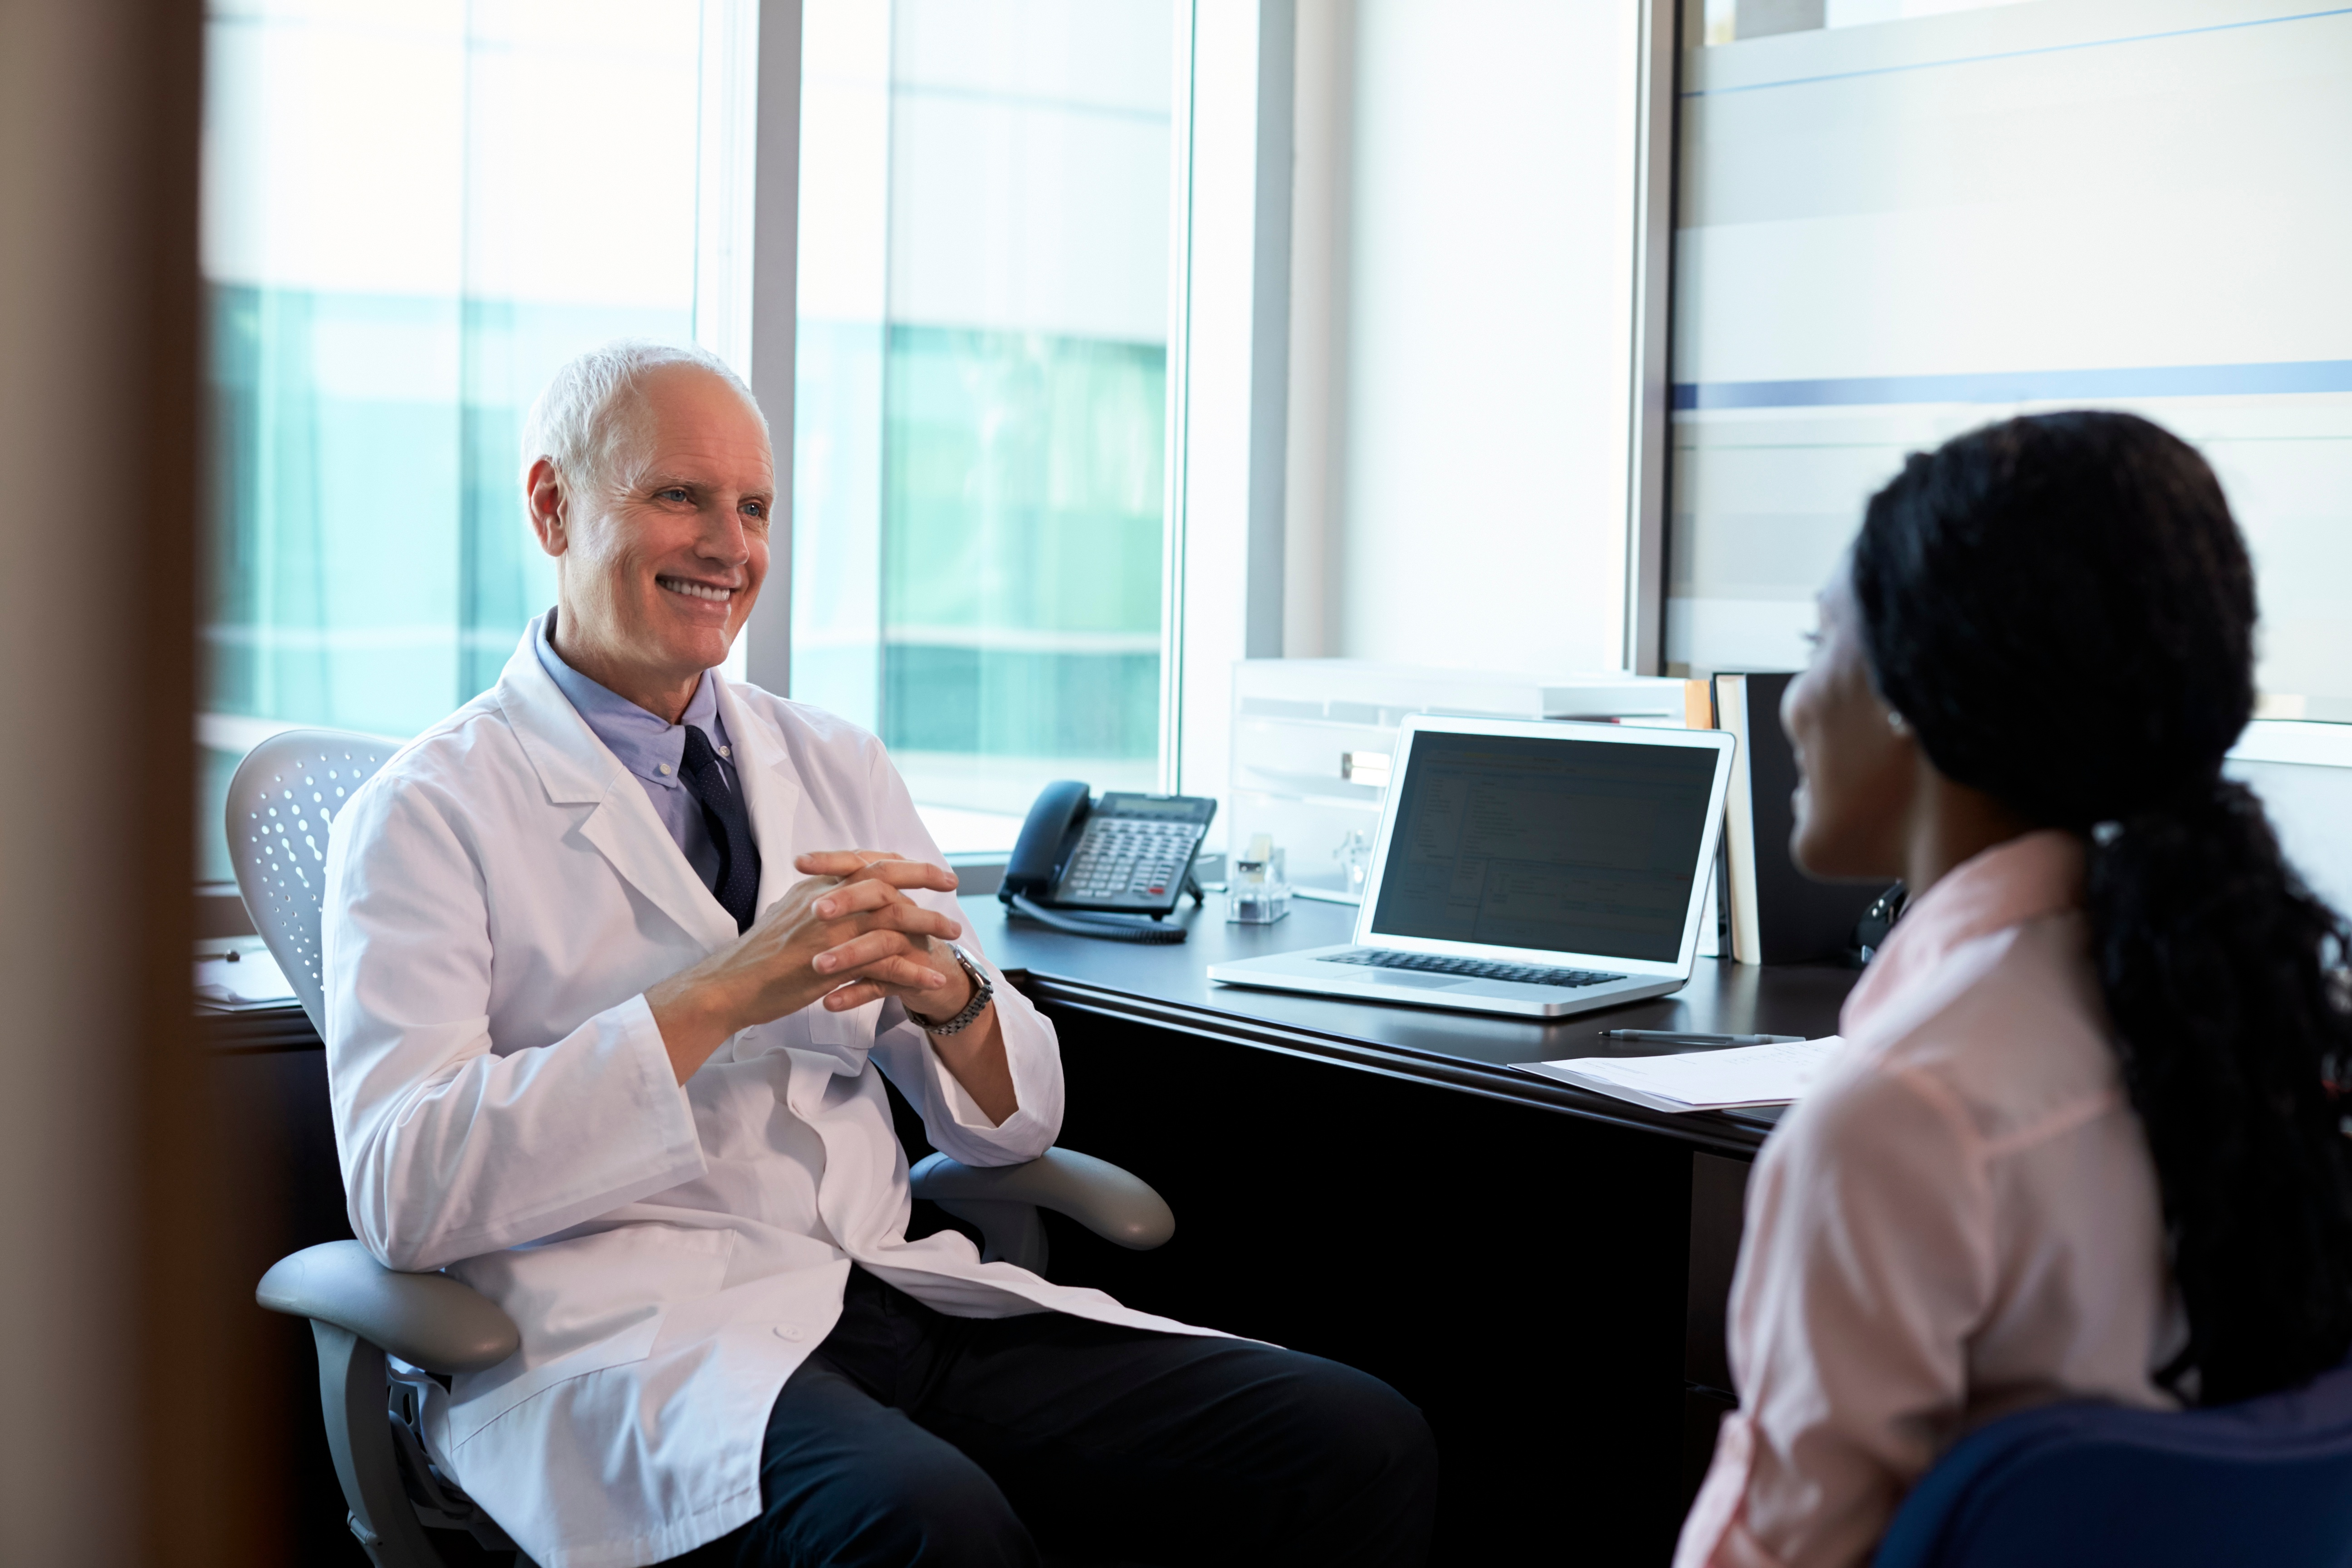 doctor-in-consultation-with-female-patient-PLZRUWN